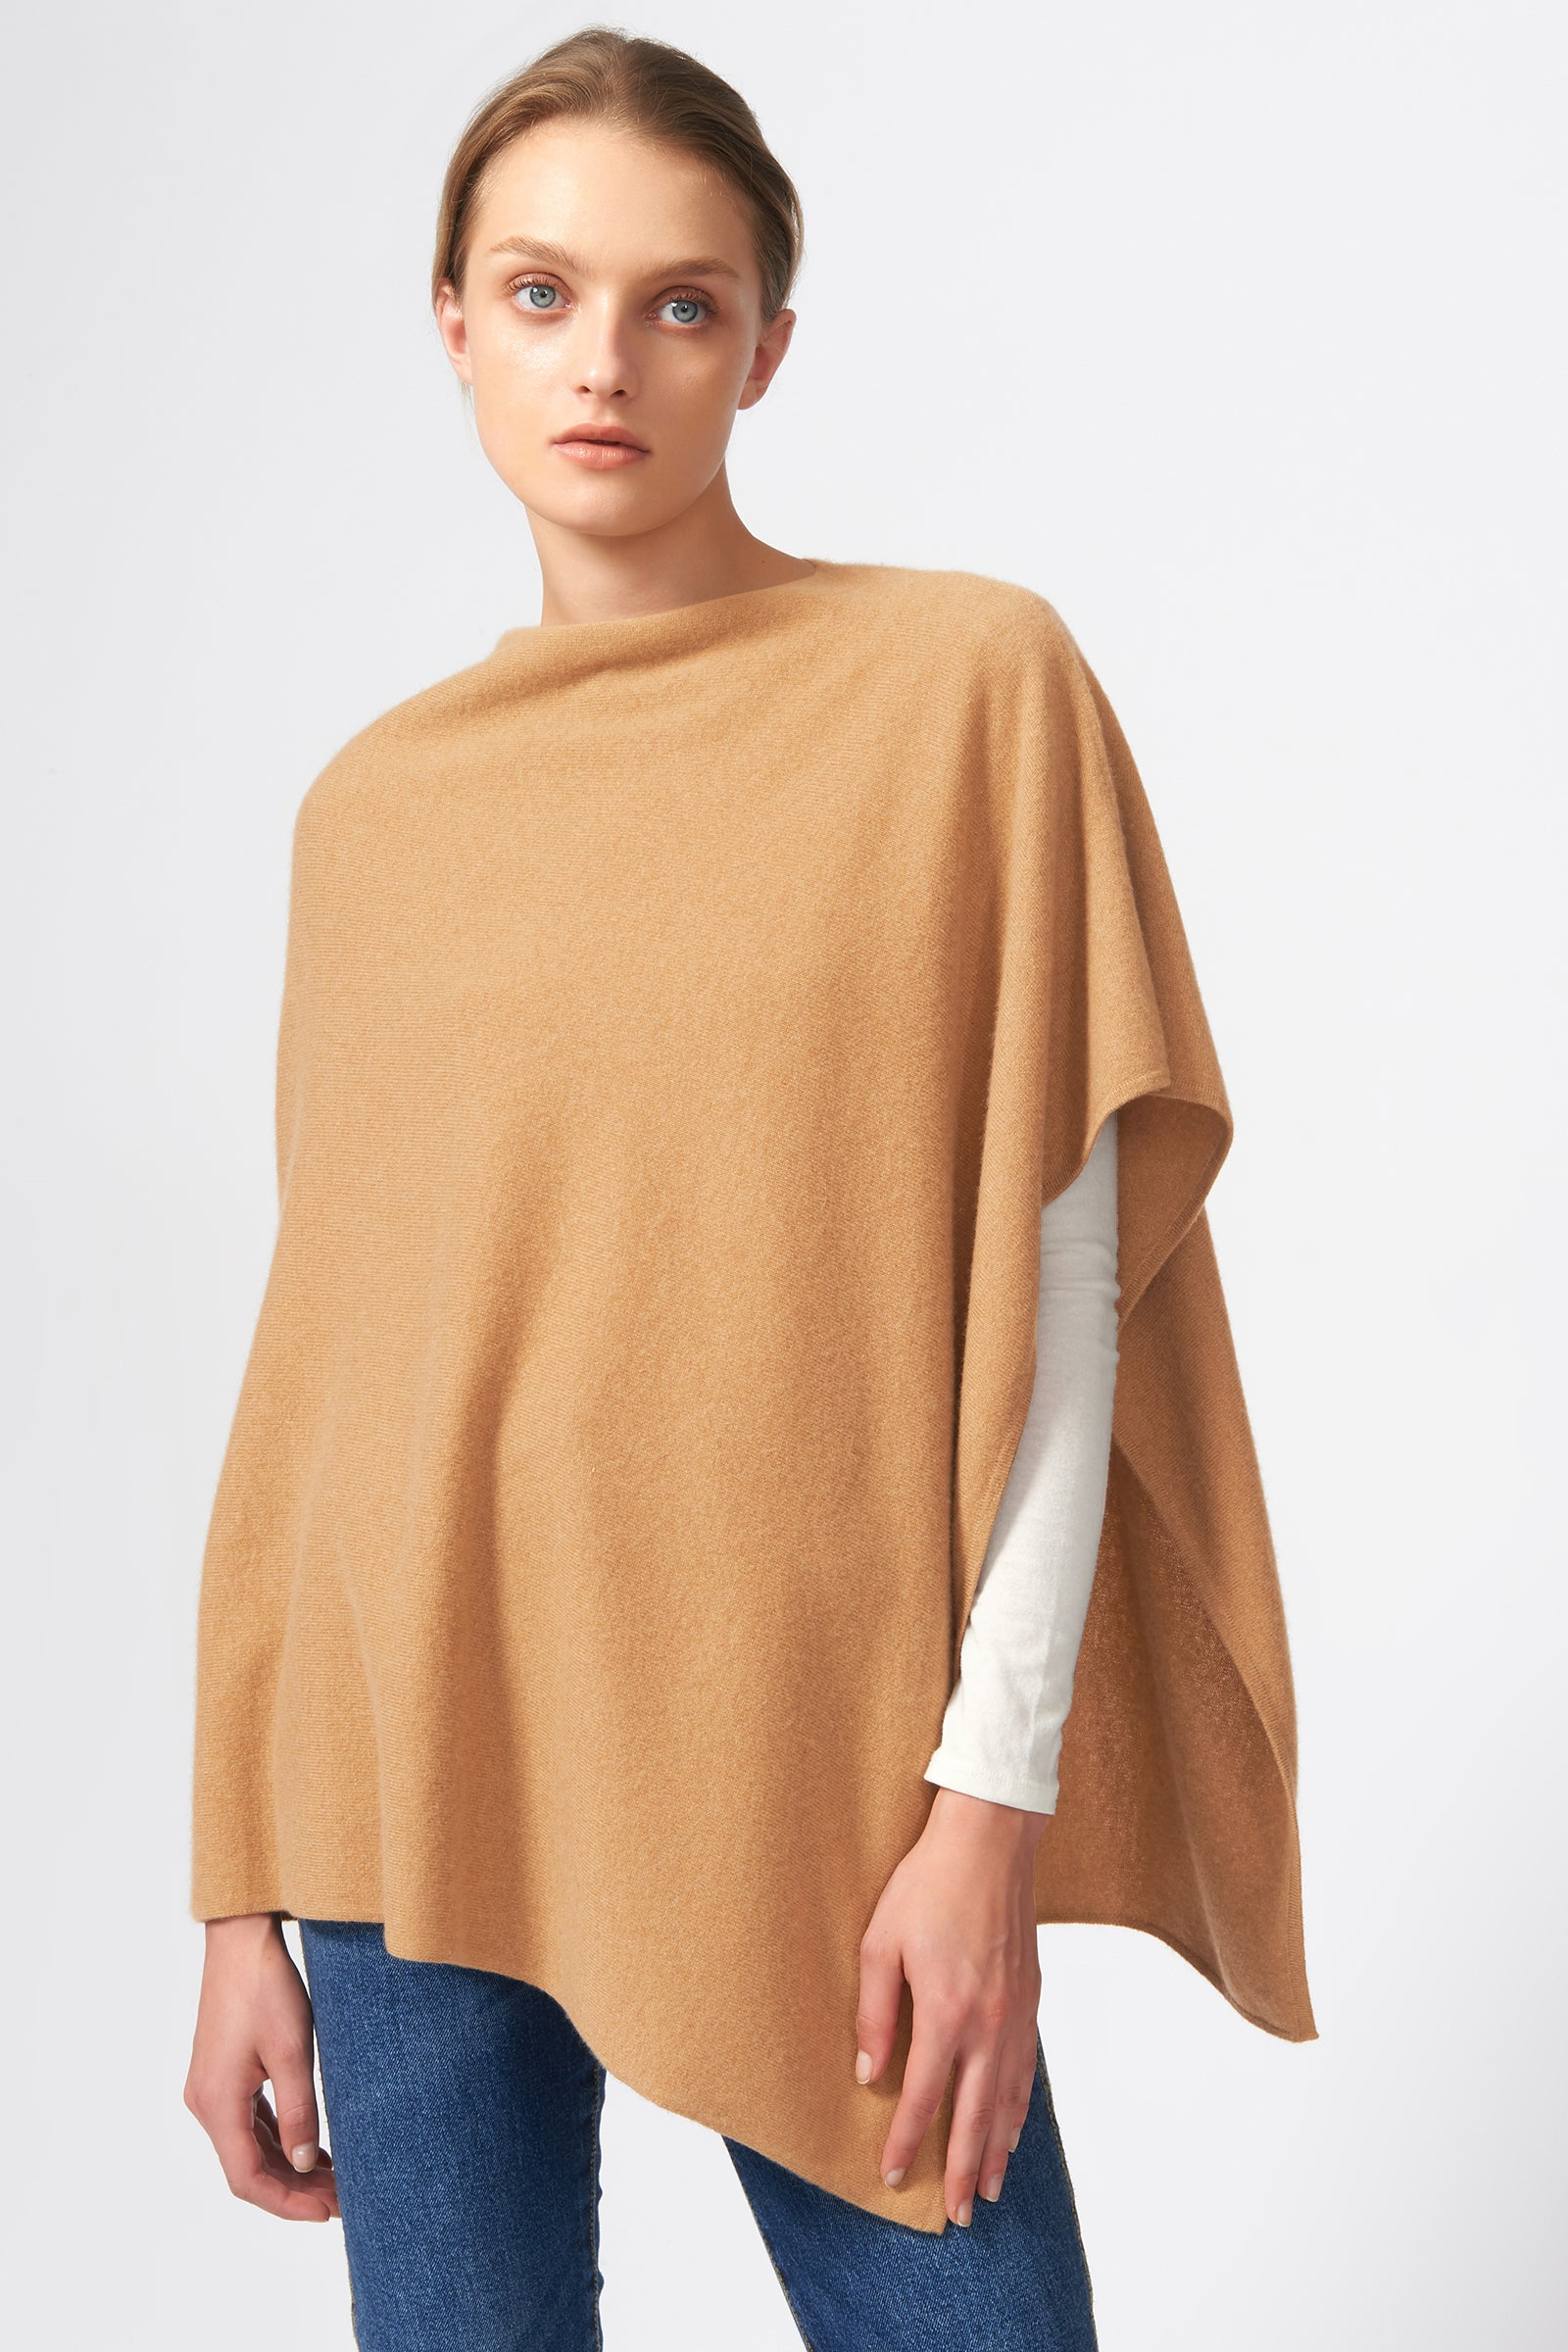 Kal Rieman Cashmere Poncho in Camel on Model Front View